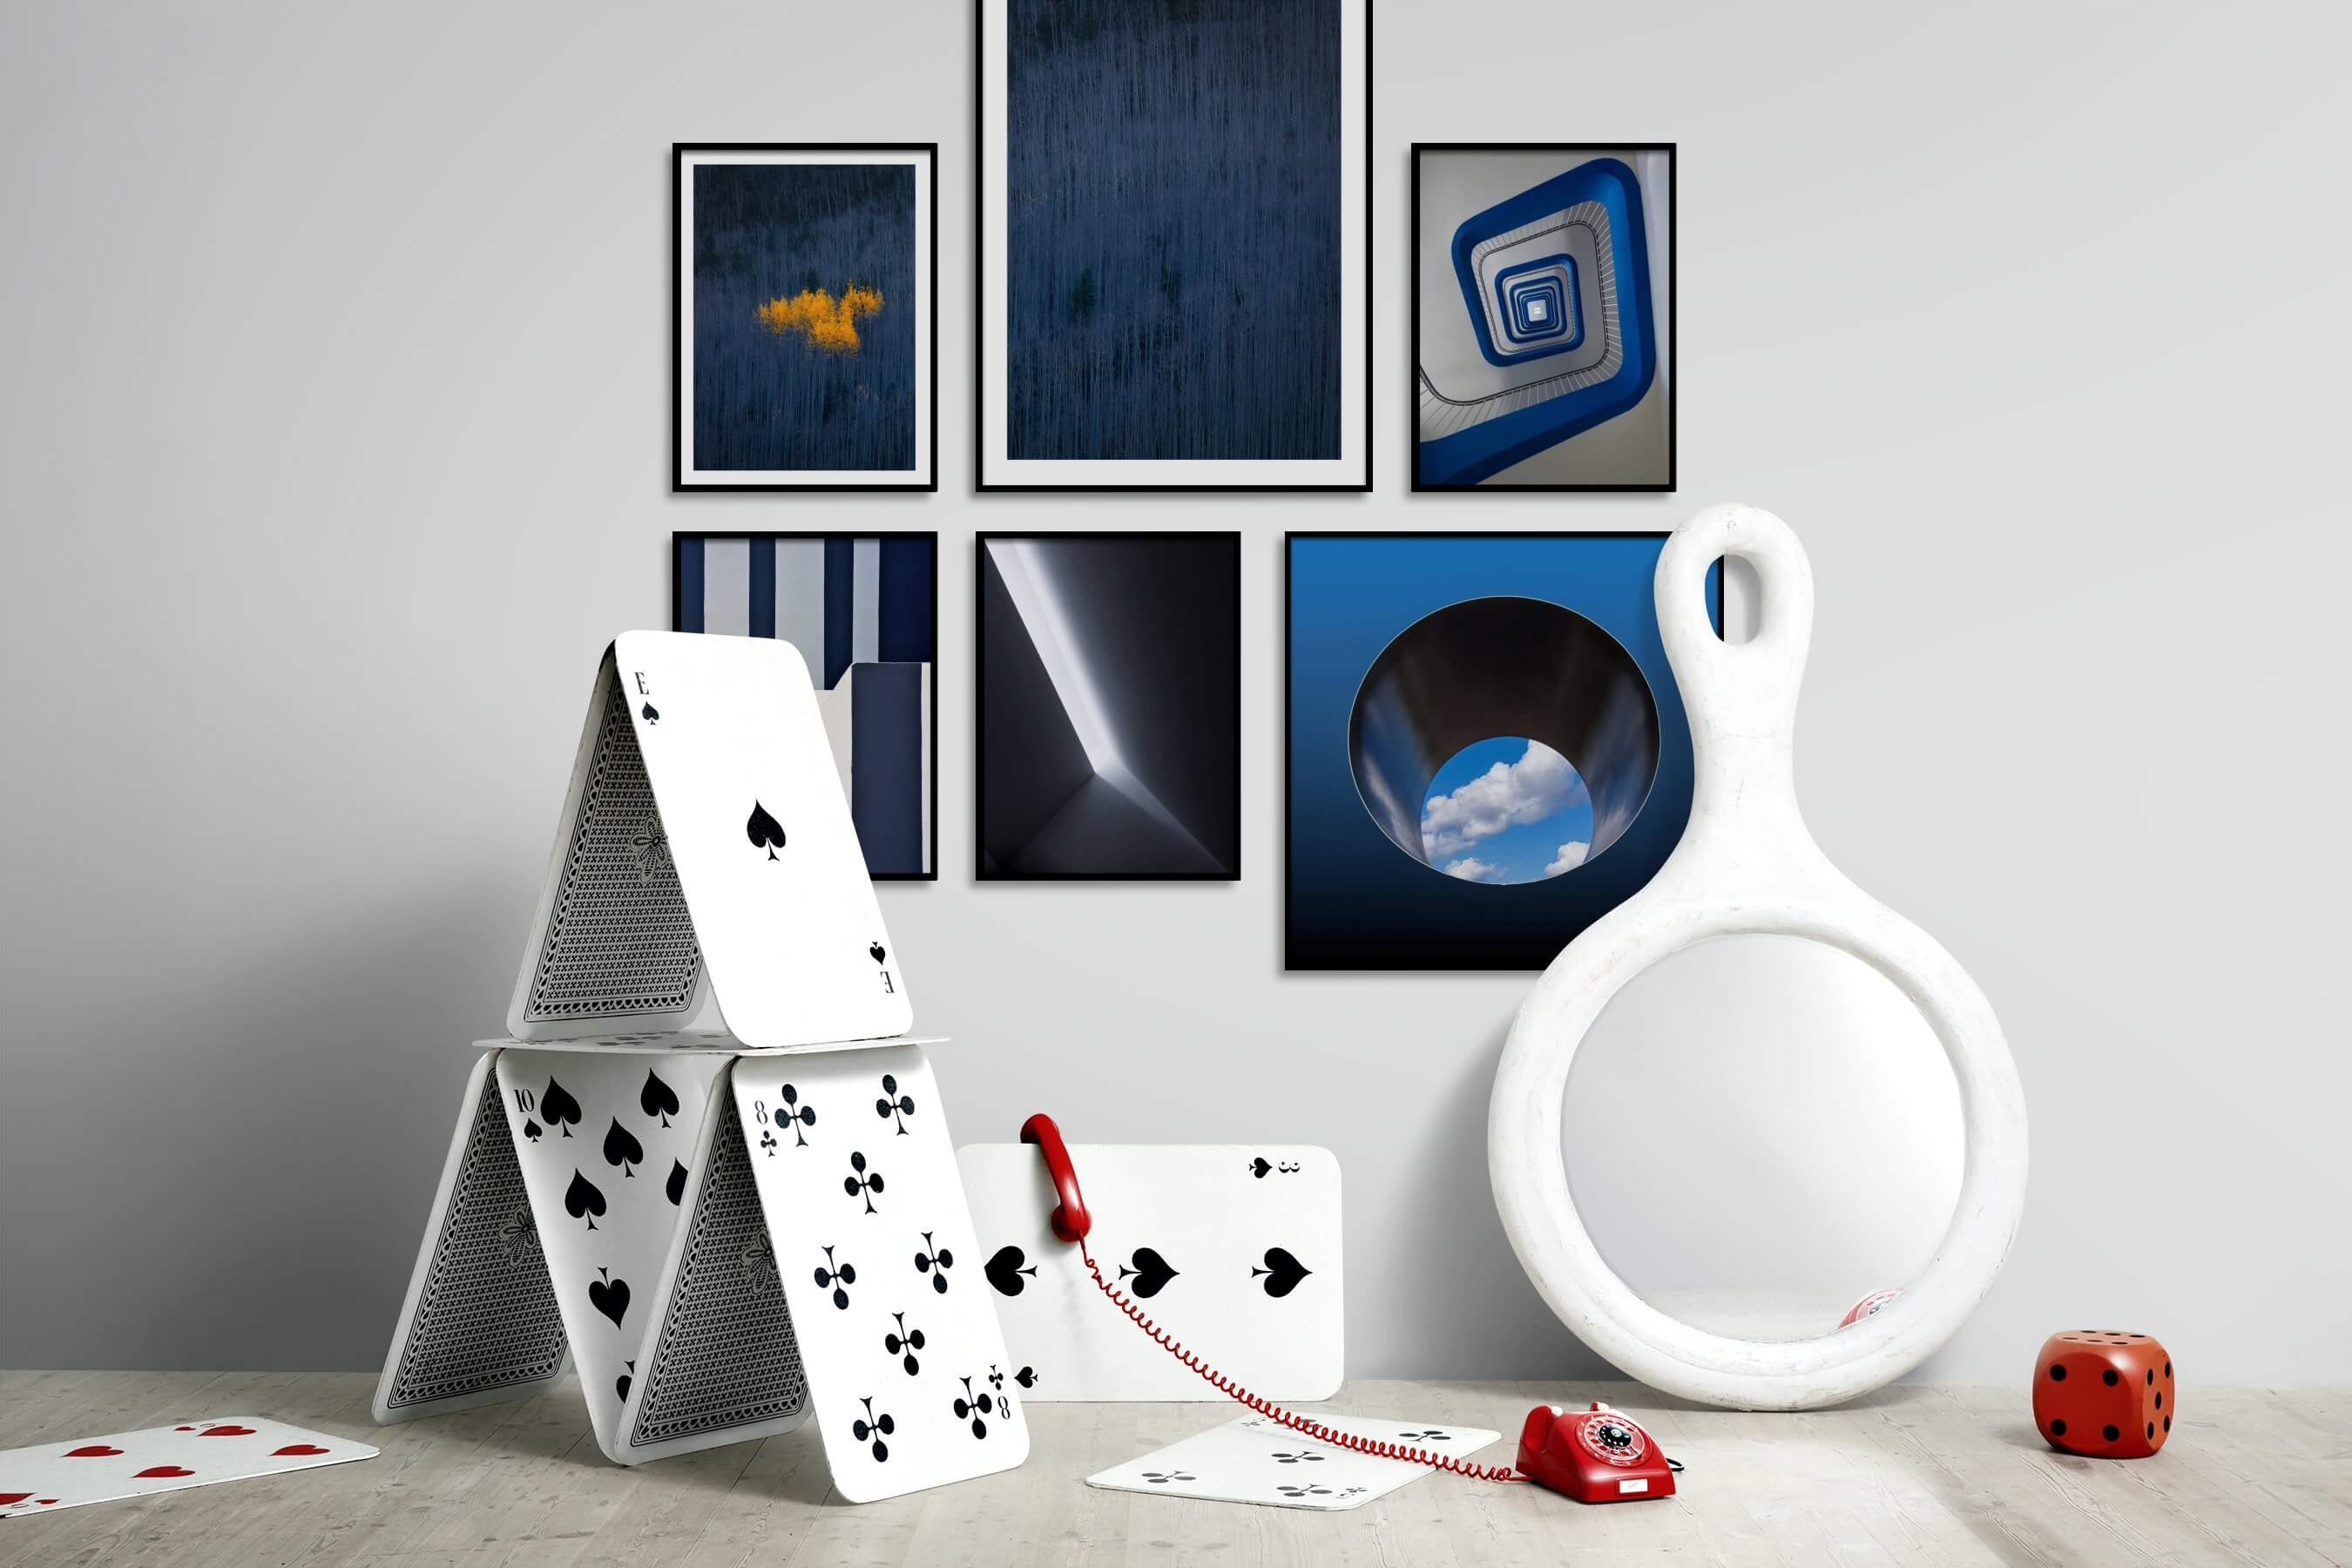 Gallery wall idea with six framed pictures arranged on a wall depicting For the Minimalist, Nature, For the Moderate, Black & White, and Mindfulness